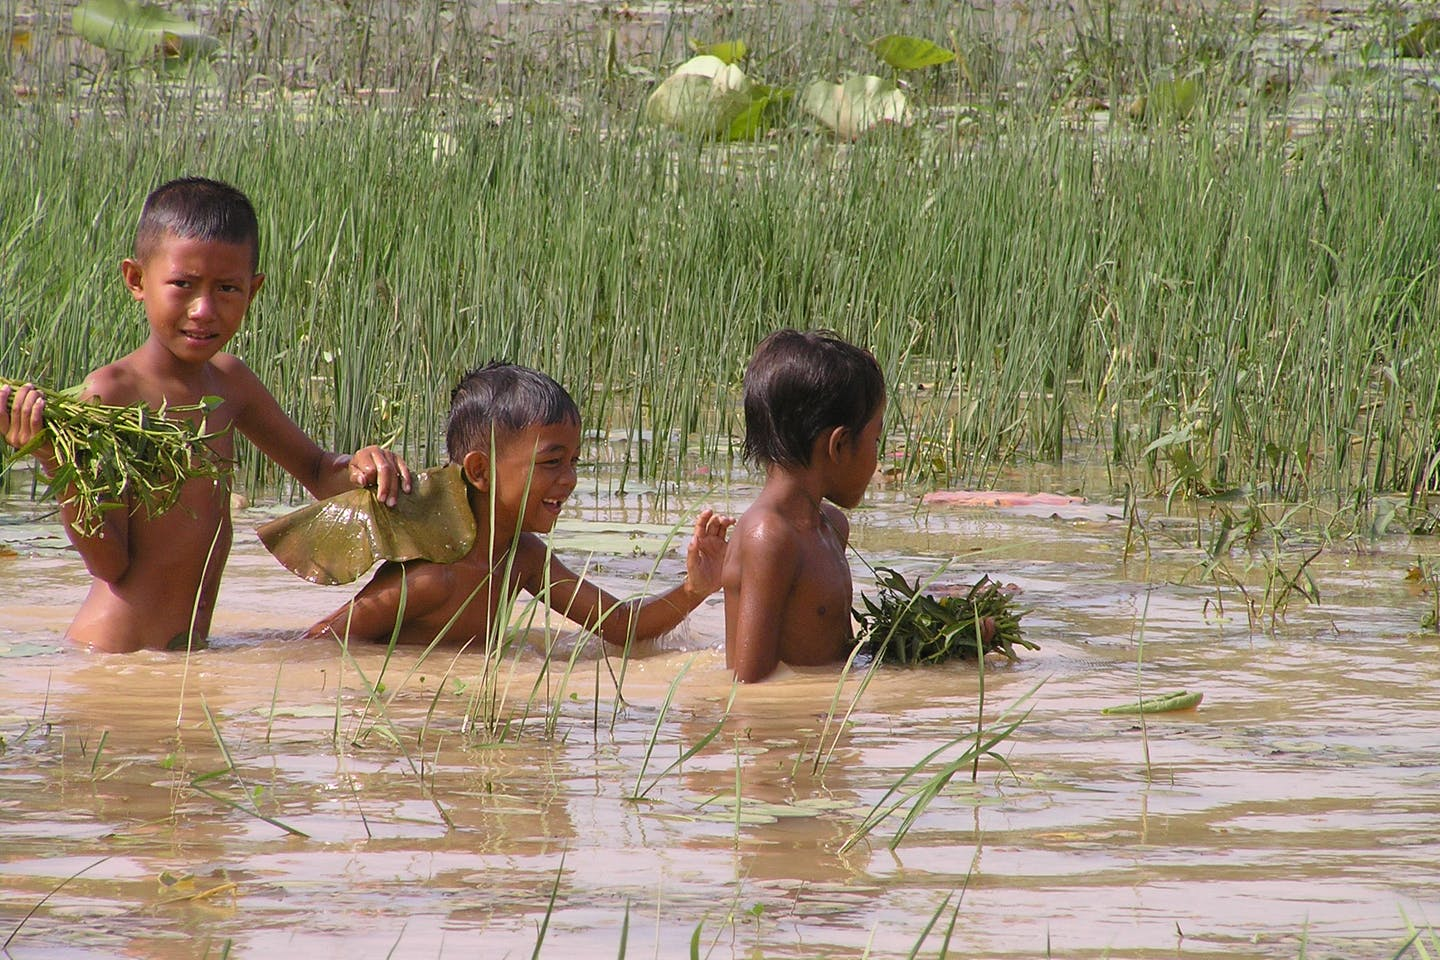 Children playing in the Mekong basin.